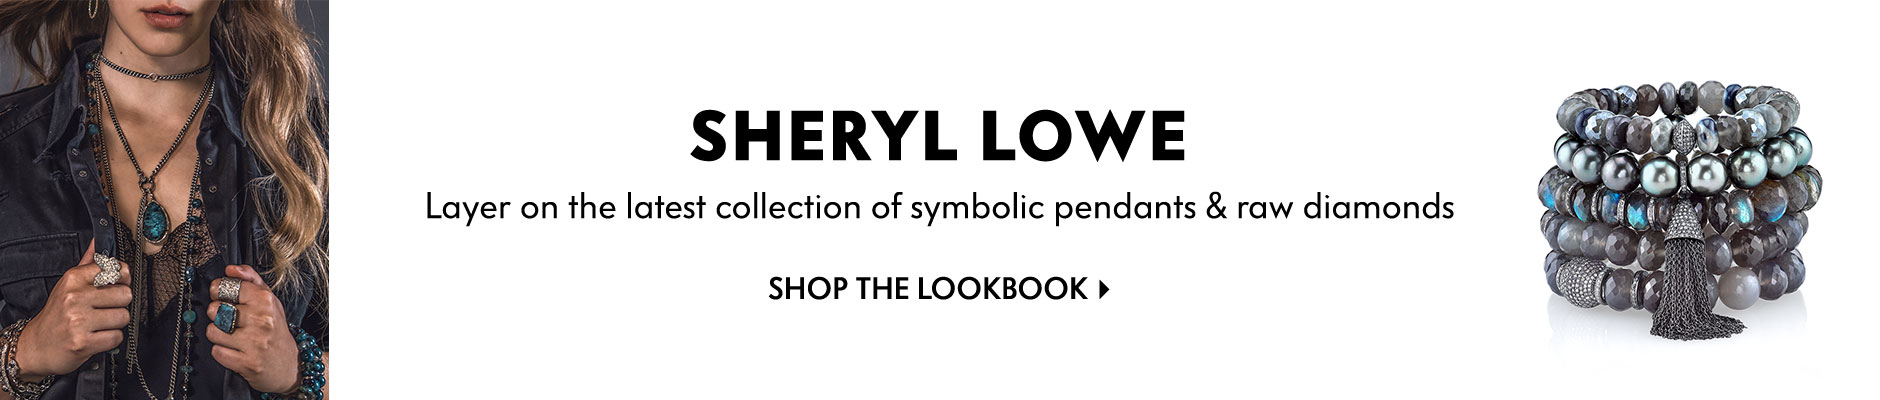 Sheryl Lowe Lookbook